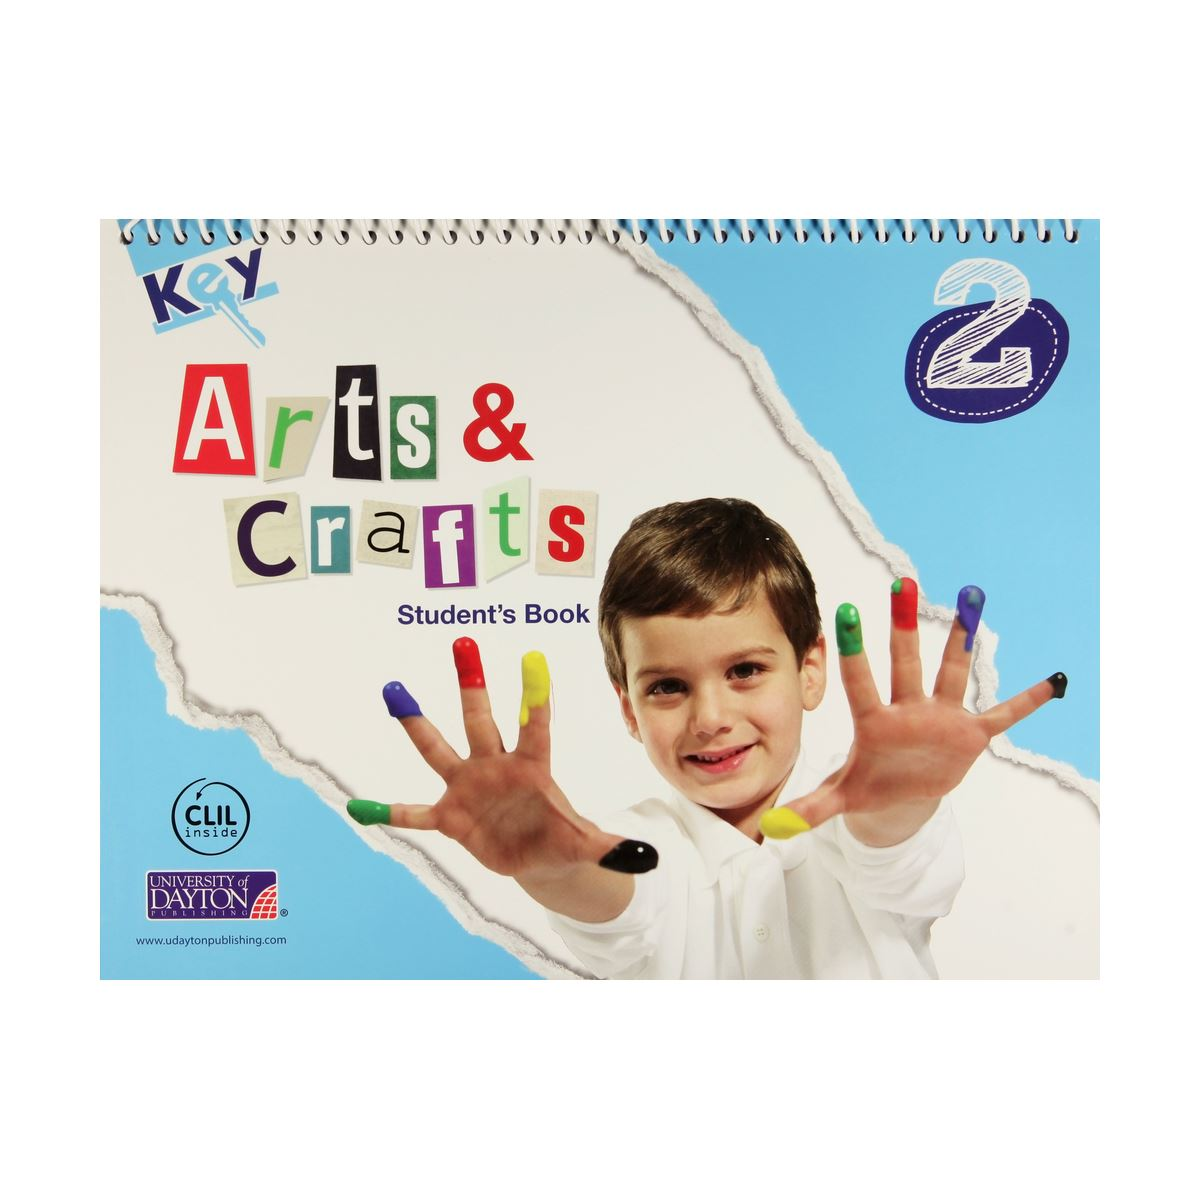 Key Arts & Crafts 2. Primary. StudentS Book